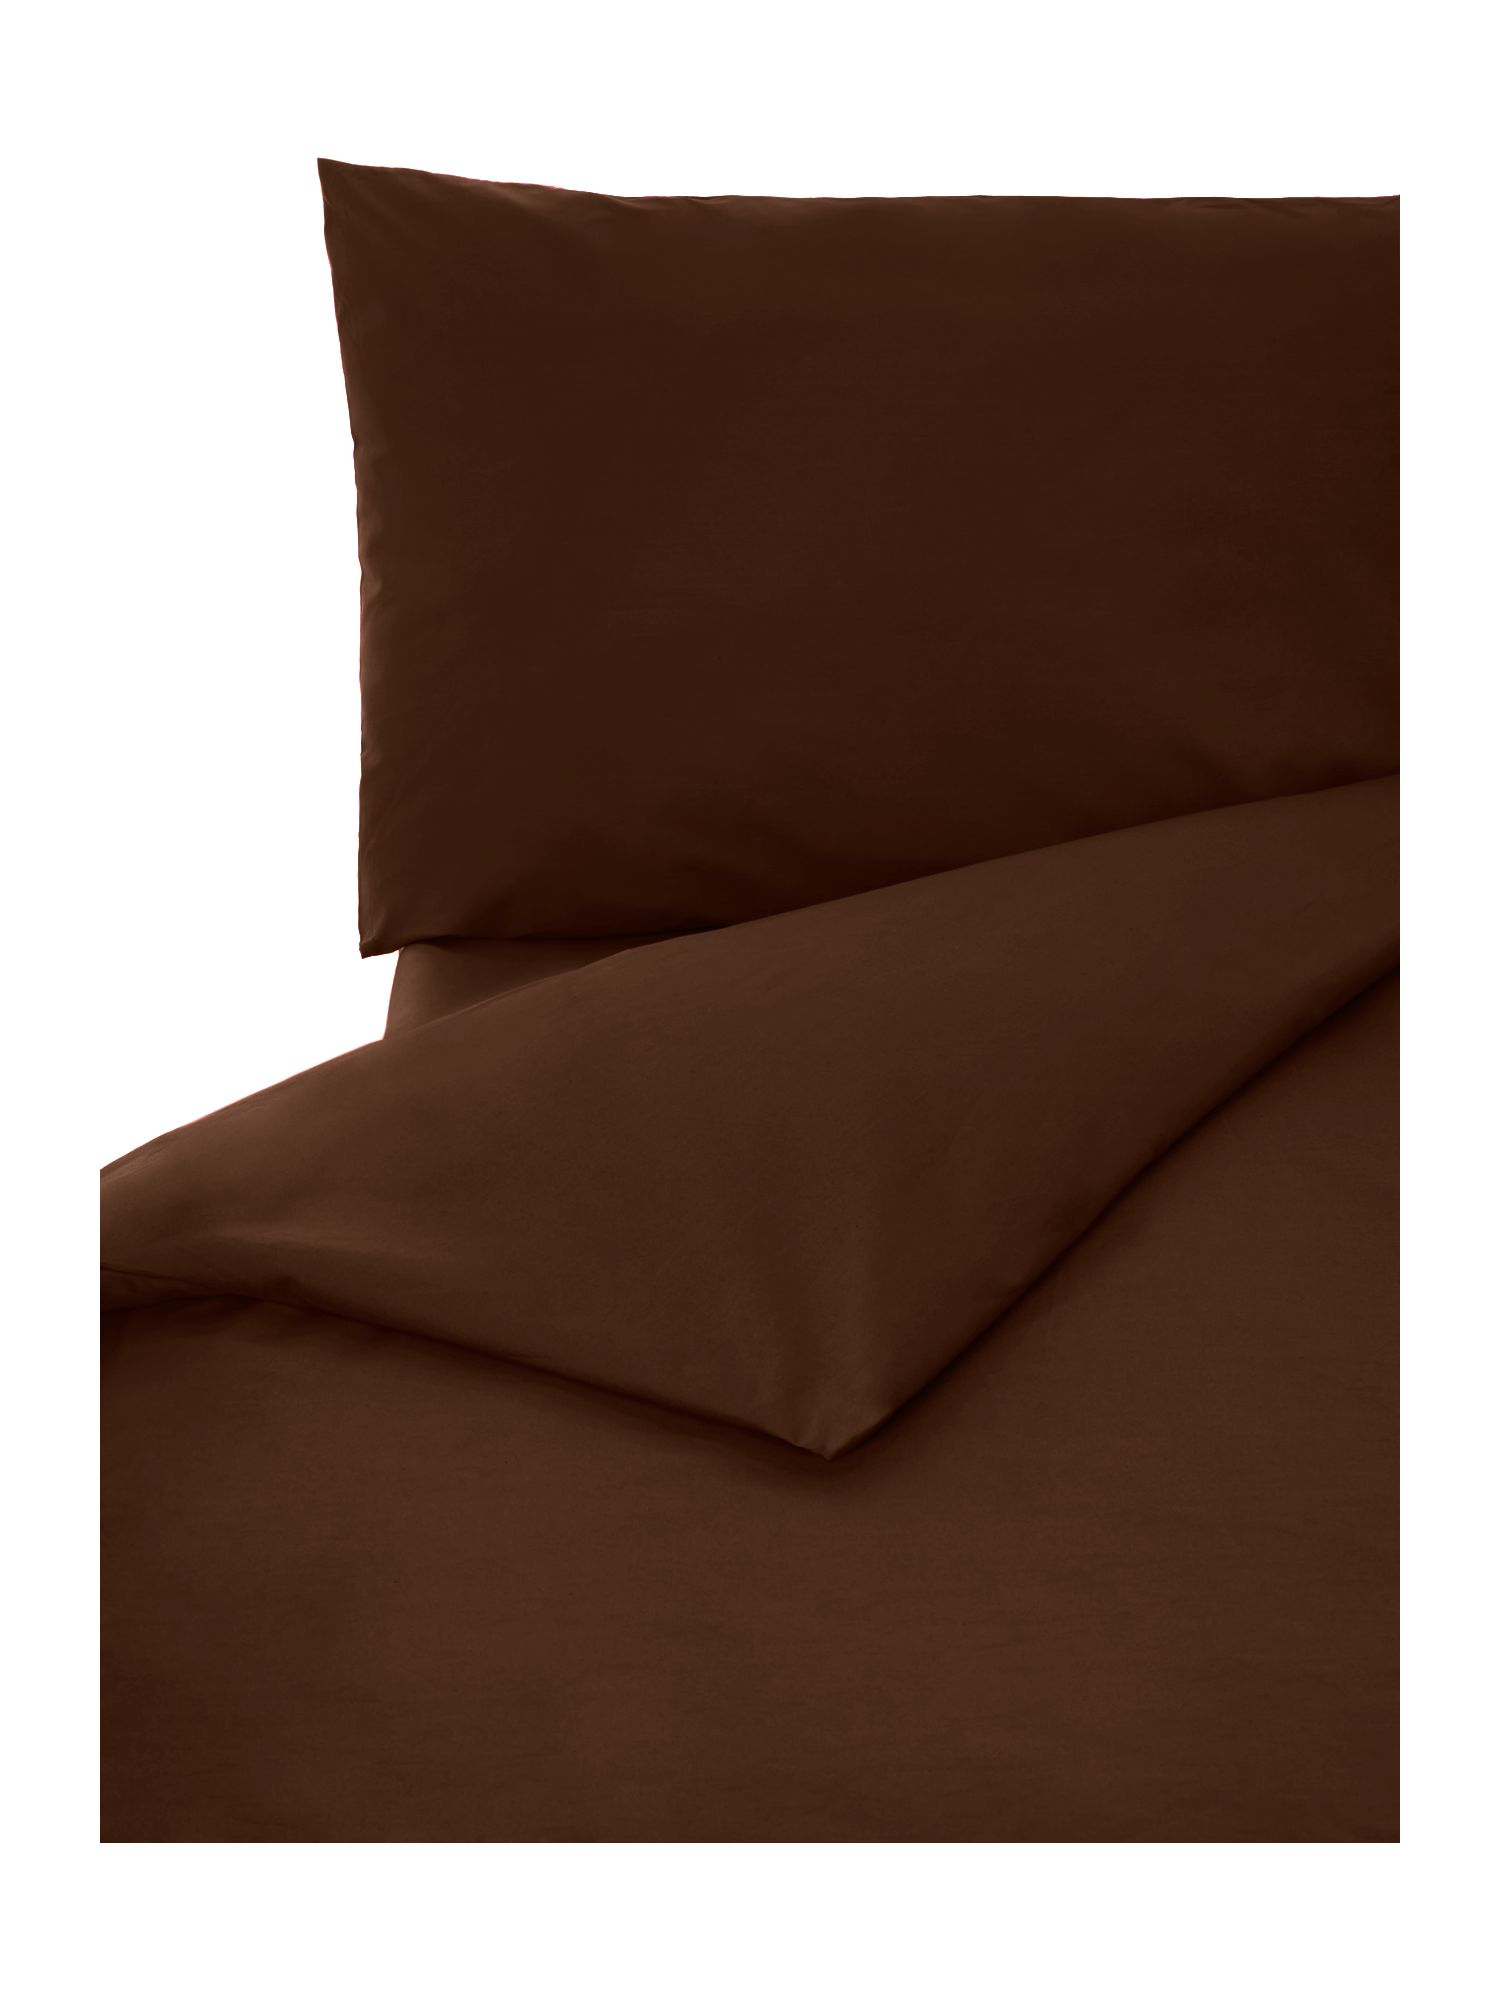 100% cotton housewife pillowcase chocolate